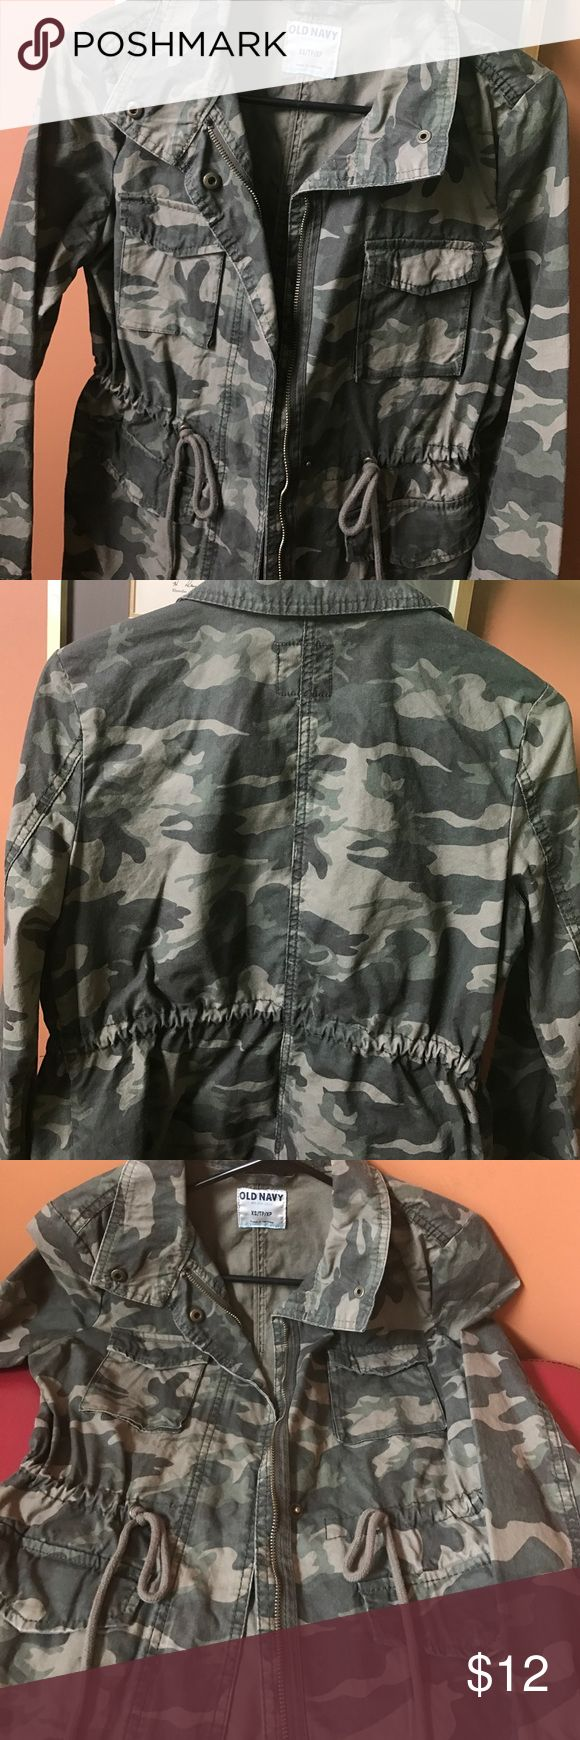 Great Camo Jacket! Old Navy Camo Jacket with waist tie. Old Navy Jackets & Coats Jean Jackets